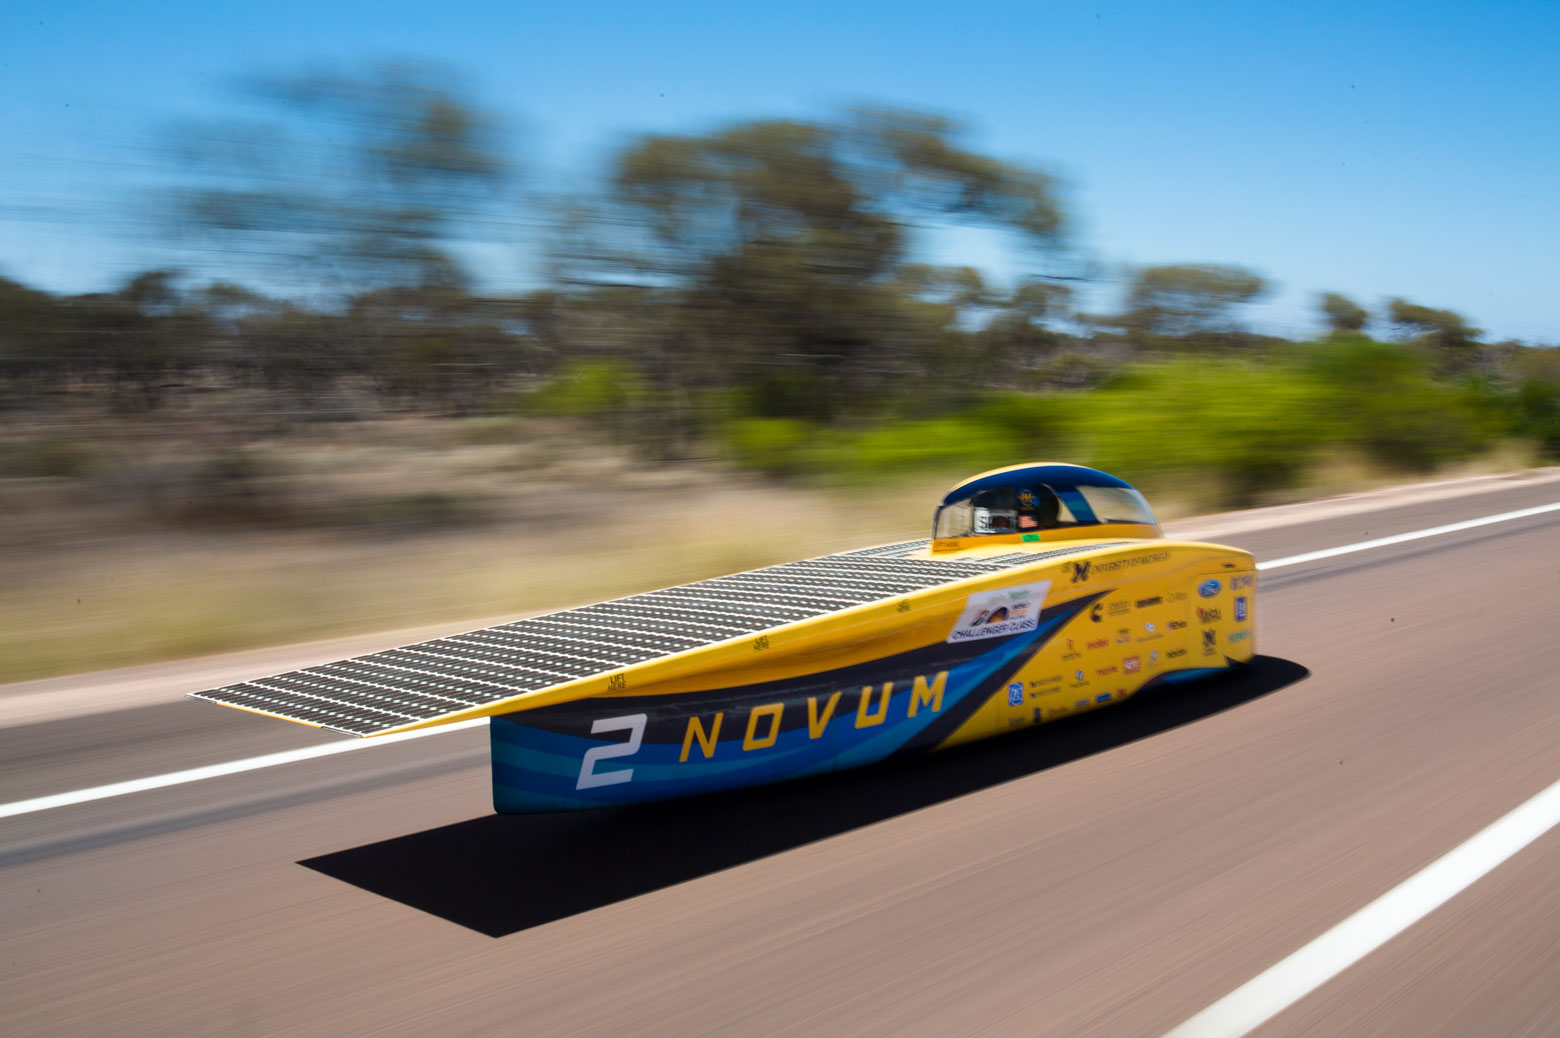 Novums, The University of Michigan Solar car.